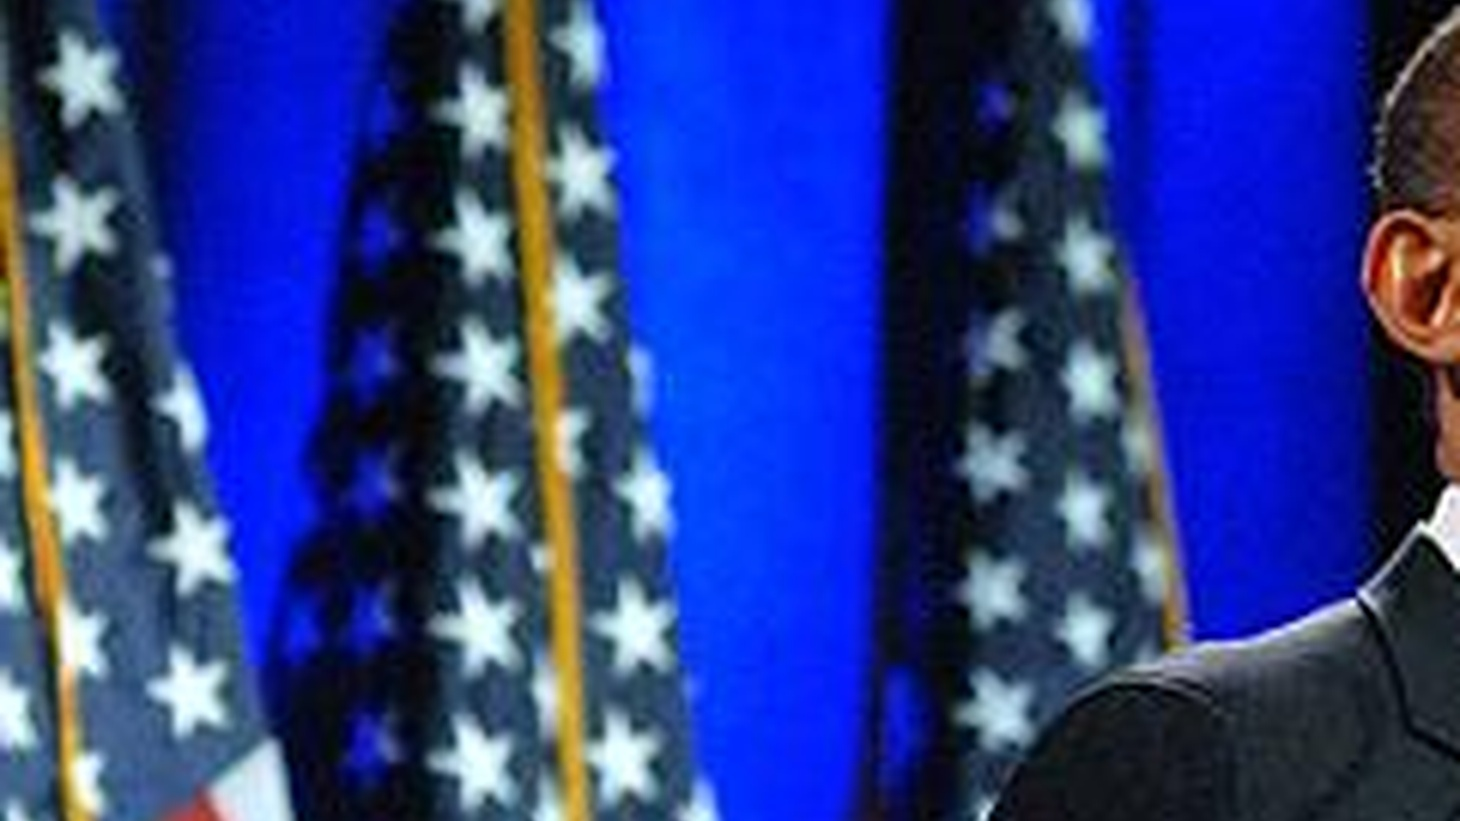 The furor over Barack Obama's church has pushed his presidential campaign into the most dangerous possible political territory -- questions about his patriotism. Has the founding fathers' notion of American exceptionalism created to an exceptionally patriotic country?  Guest host Lawrence O'Donnell talks about the defining role patriotism plays in American politics and what role patriotism plays in the politics of other countries.